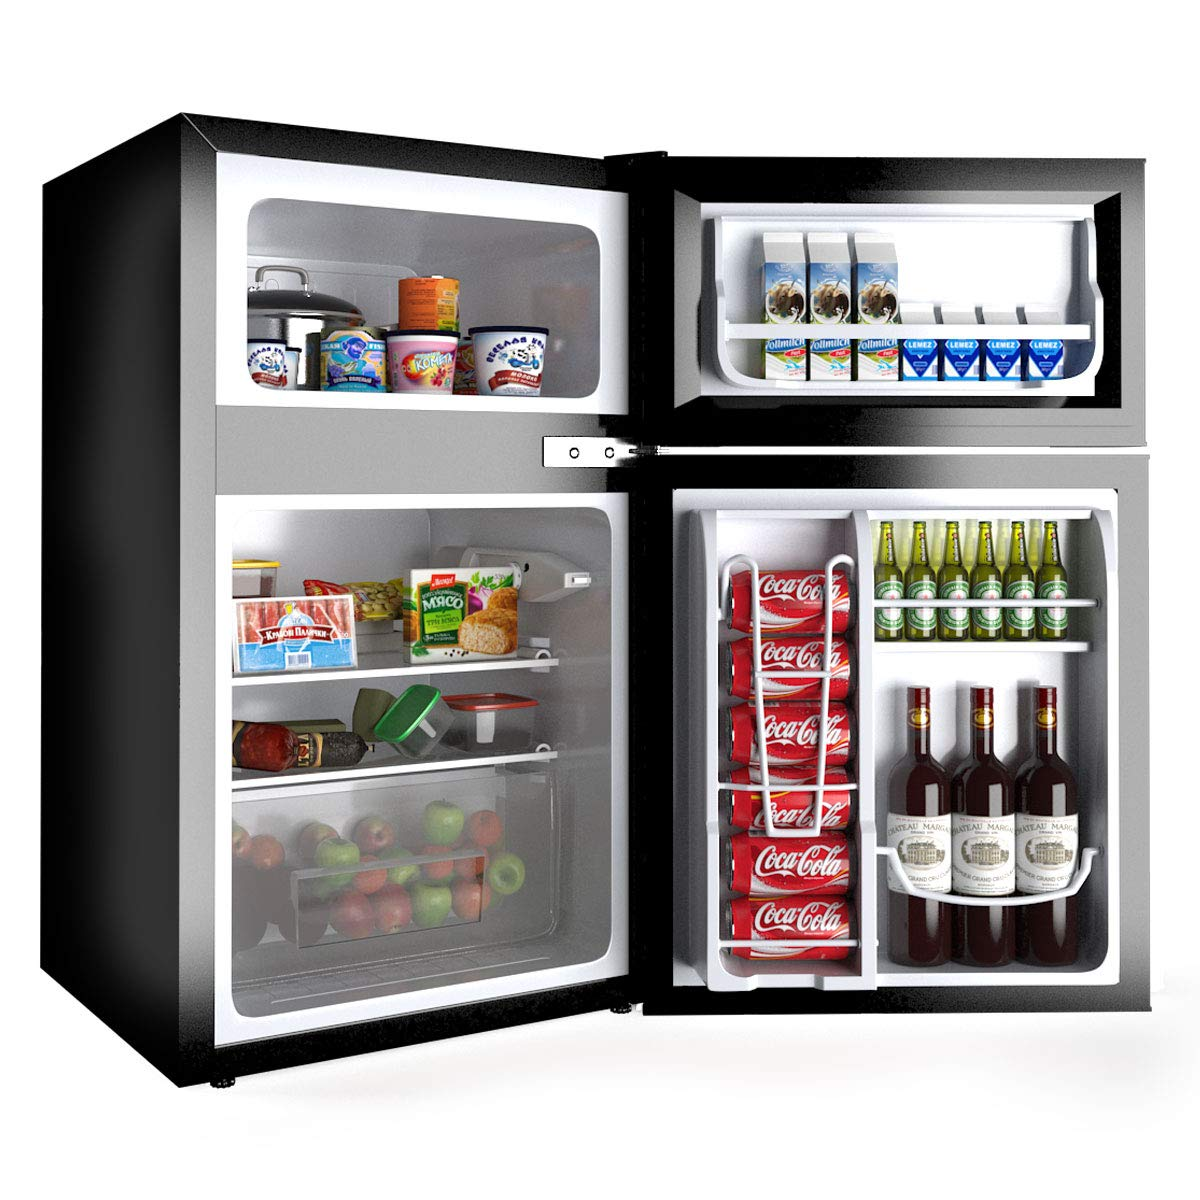 Top rated compact refrigerator for buy